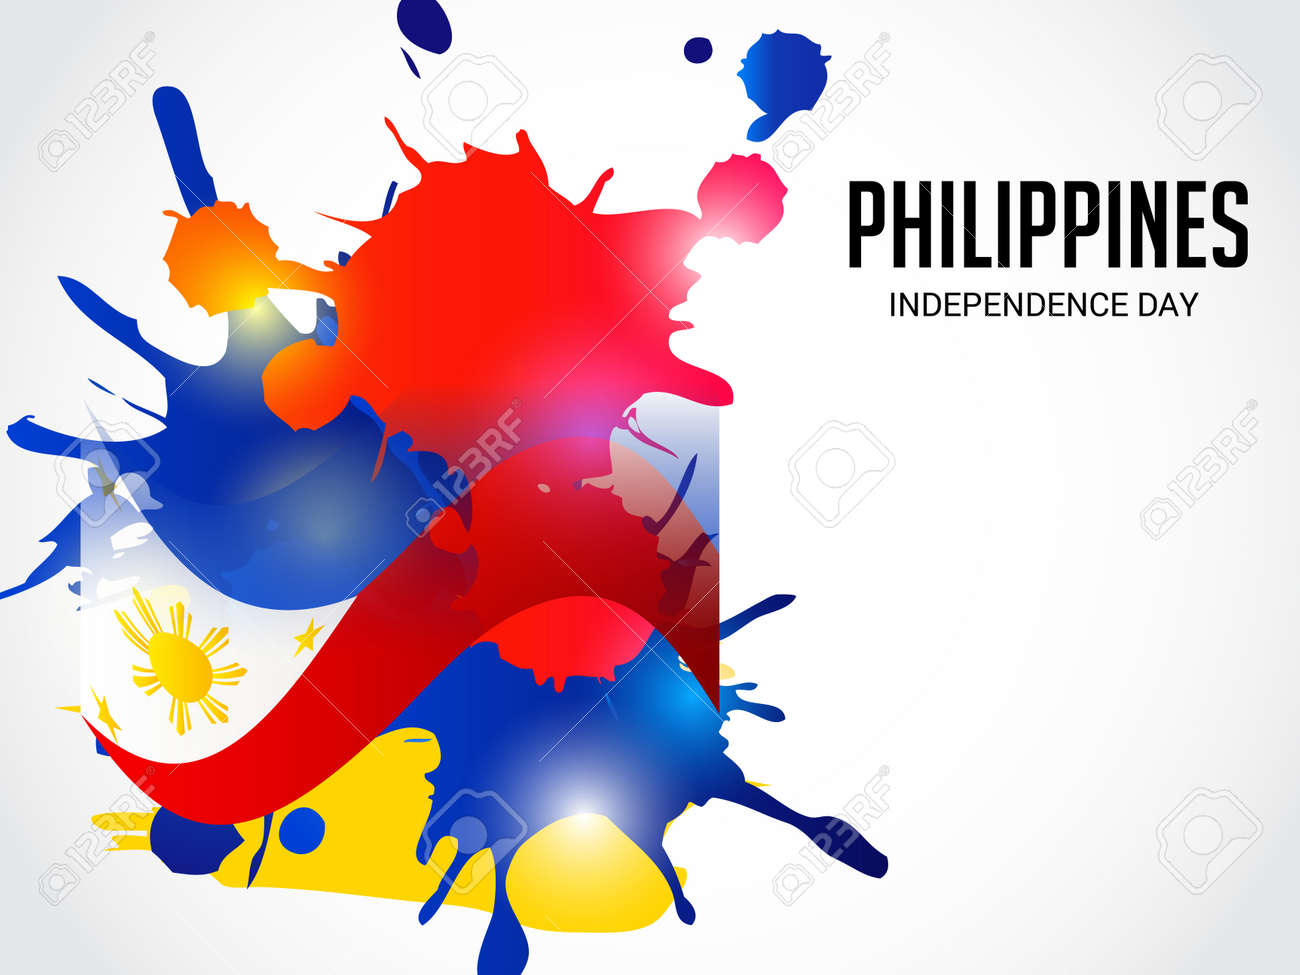 Philippines Independence Day Stock Vector